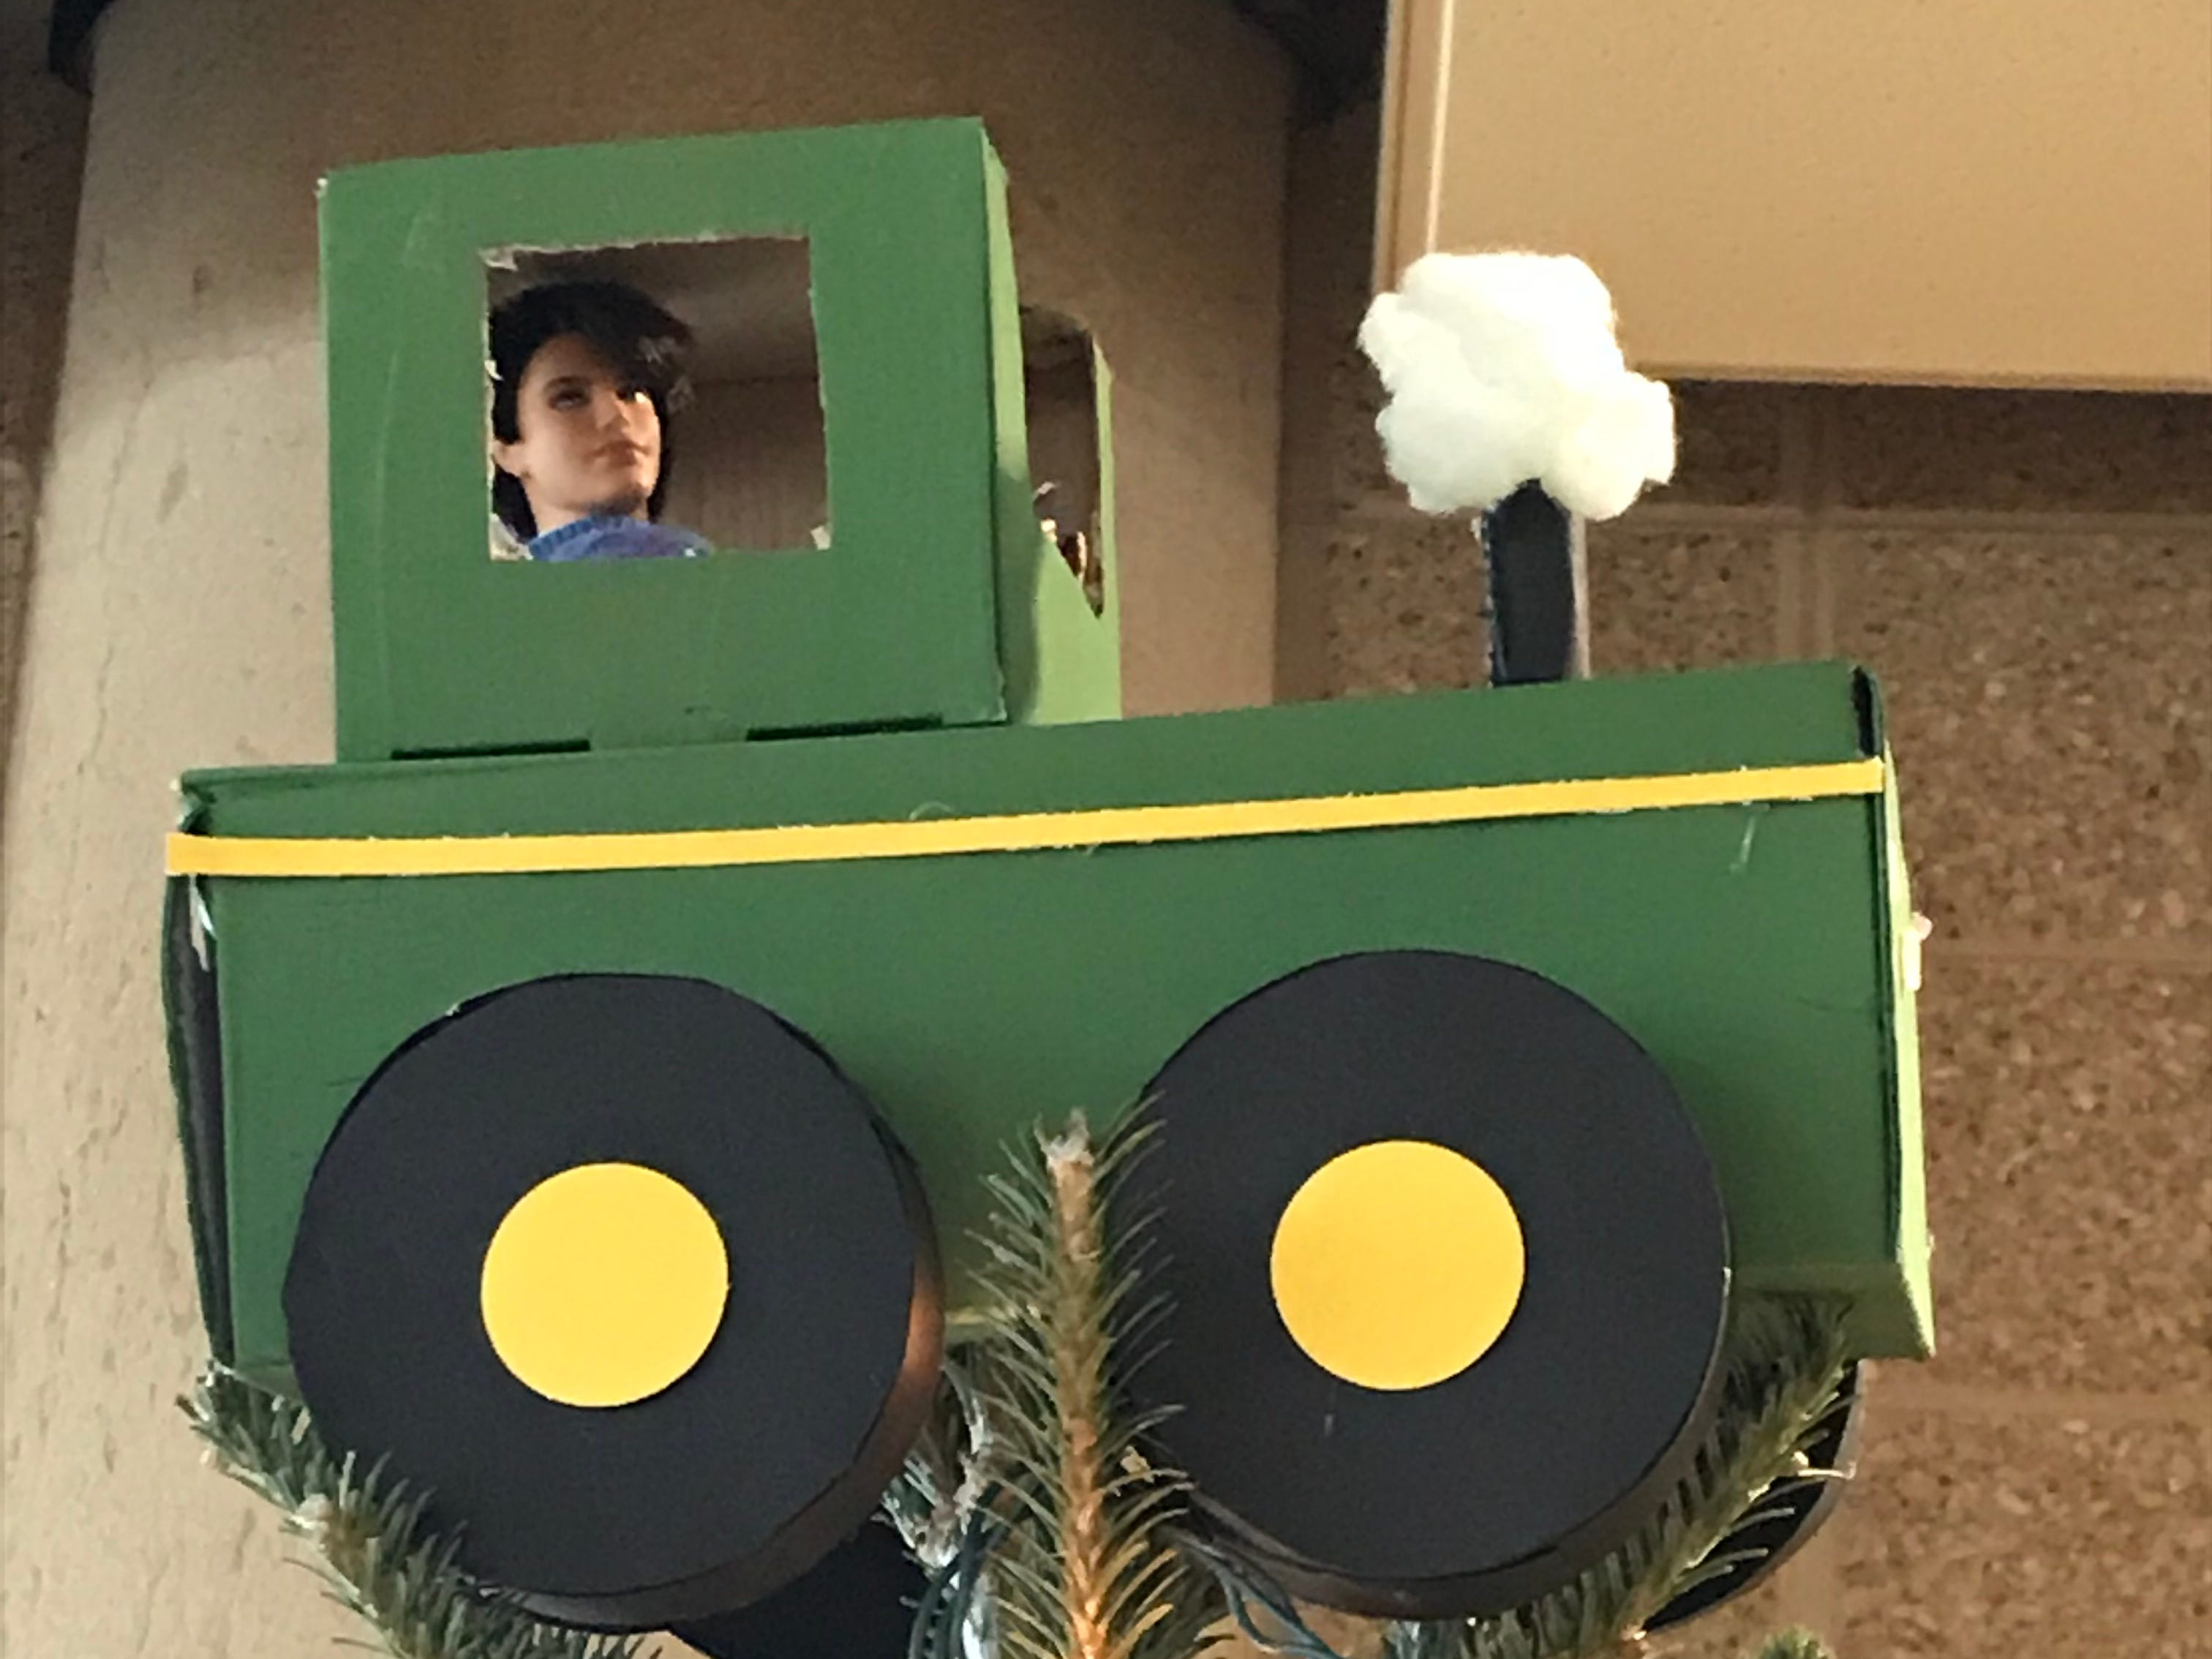 Even tree toppers can be homemade, like this tractor on a tree at the Milwaukee County Zoo, made by children from Forest Park.